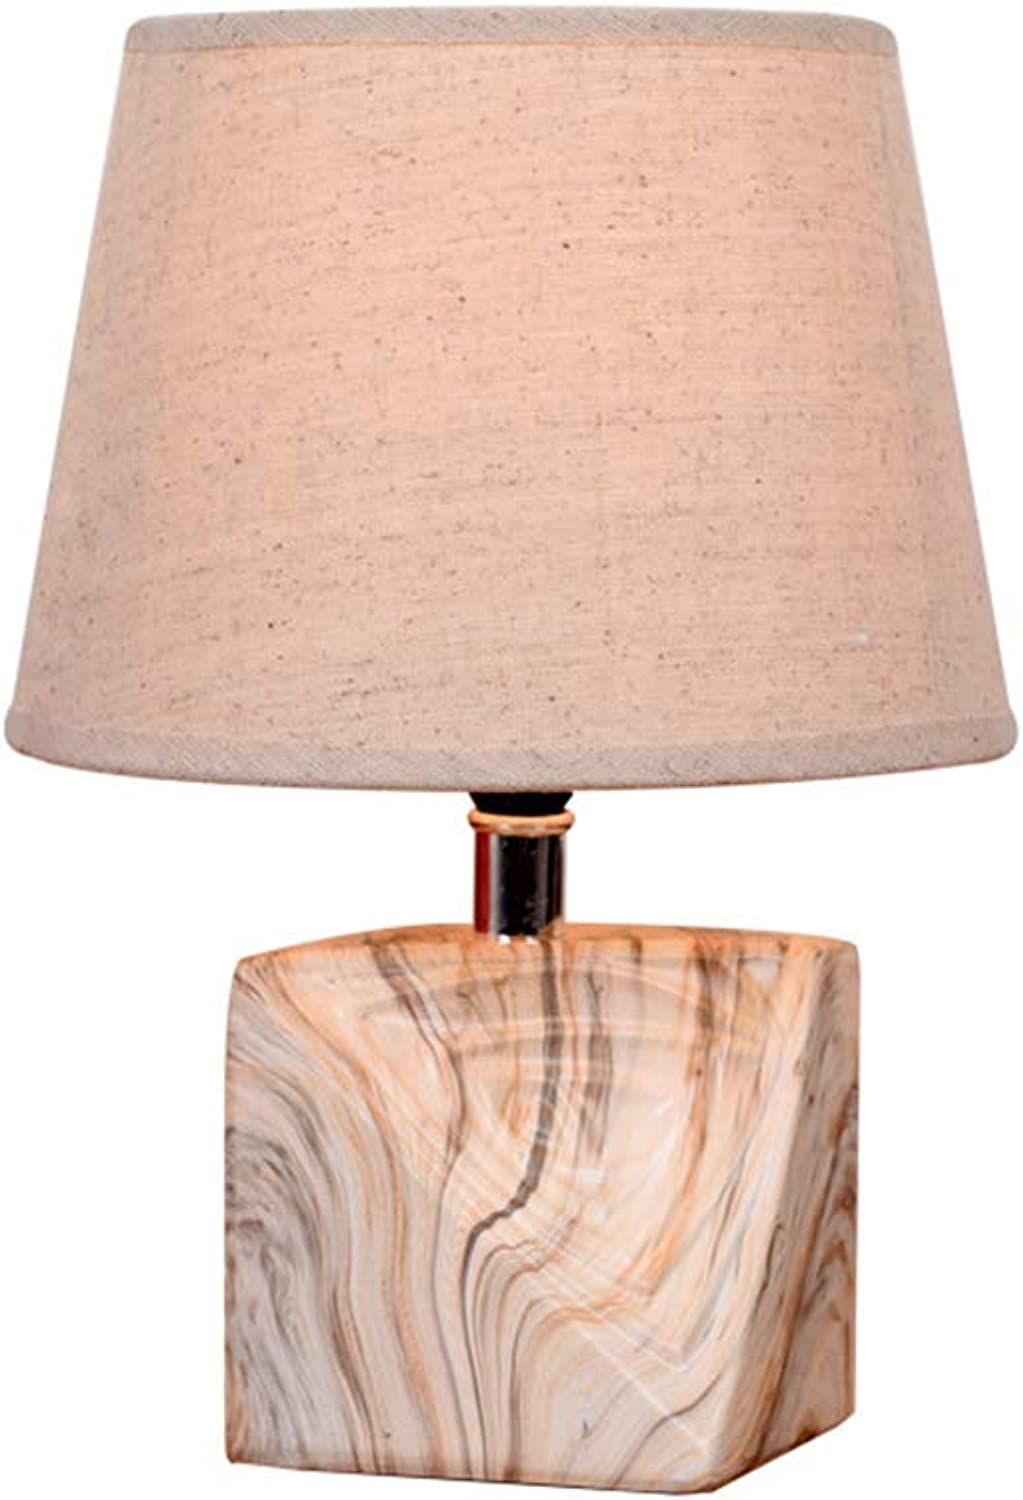 Creative Ceramic Table lamp, Wood Texture Bedside lamp for Decorating The Living Room Study